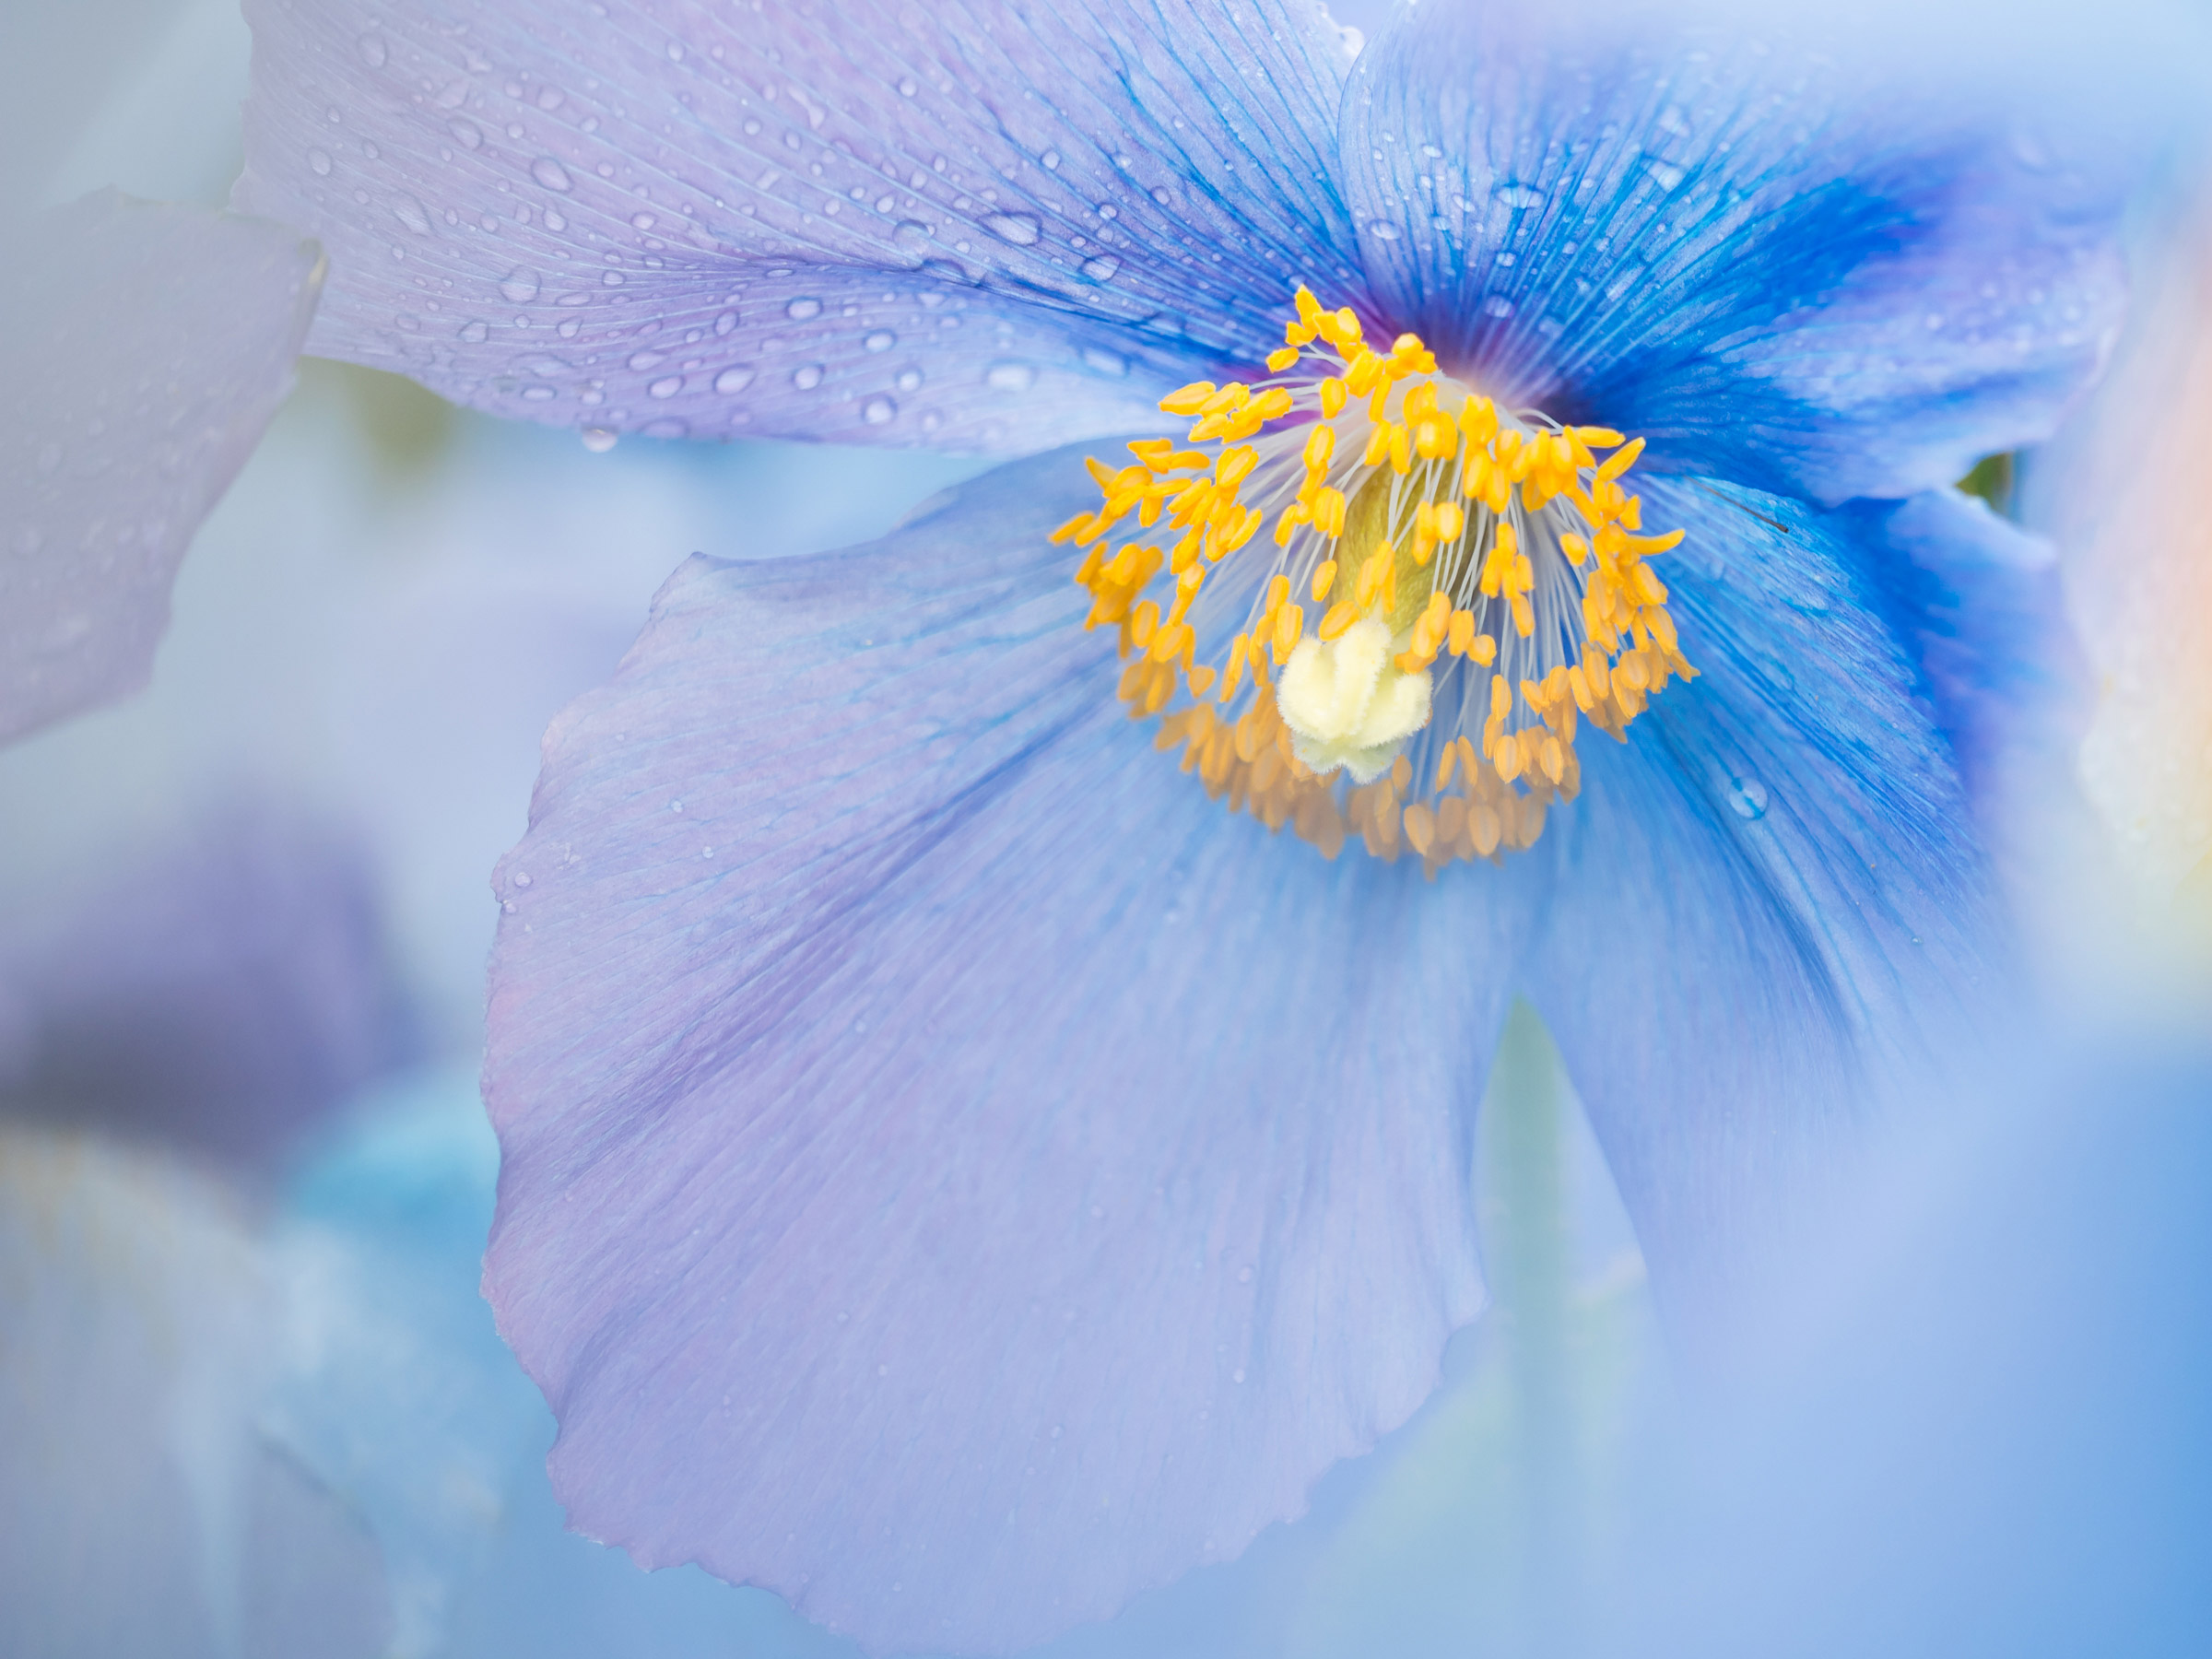 macro image of flower with moisture drops